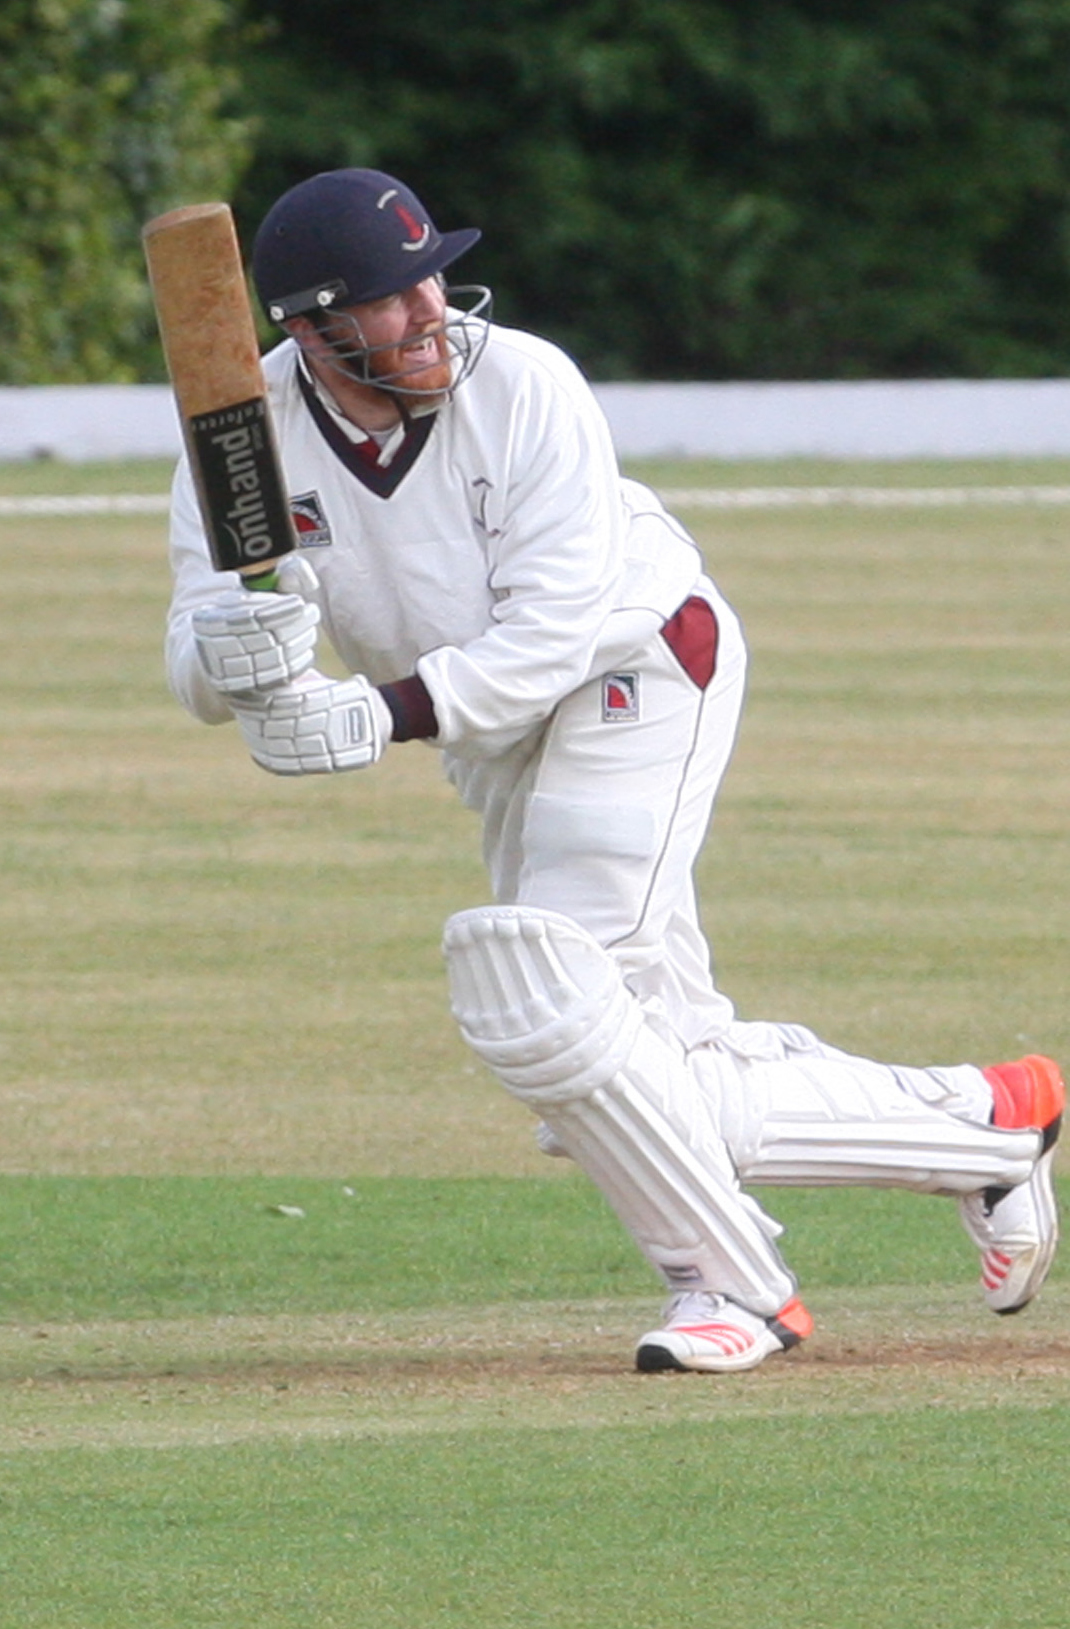 ALL-ROUNDER: Jimmy Phillips hit 35 not out and took 3-23 for Banbury 2nd